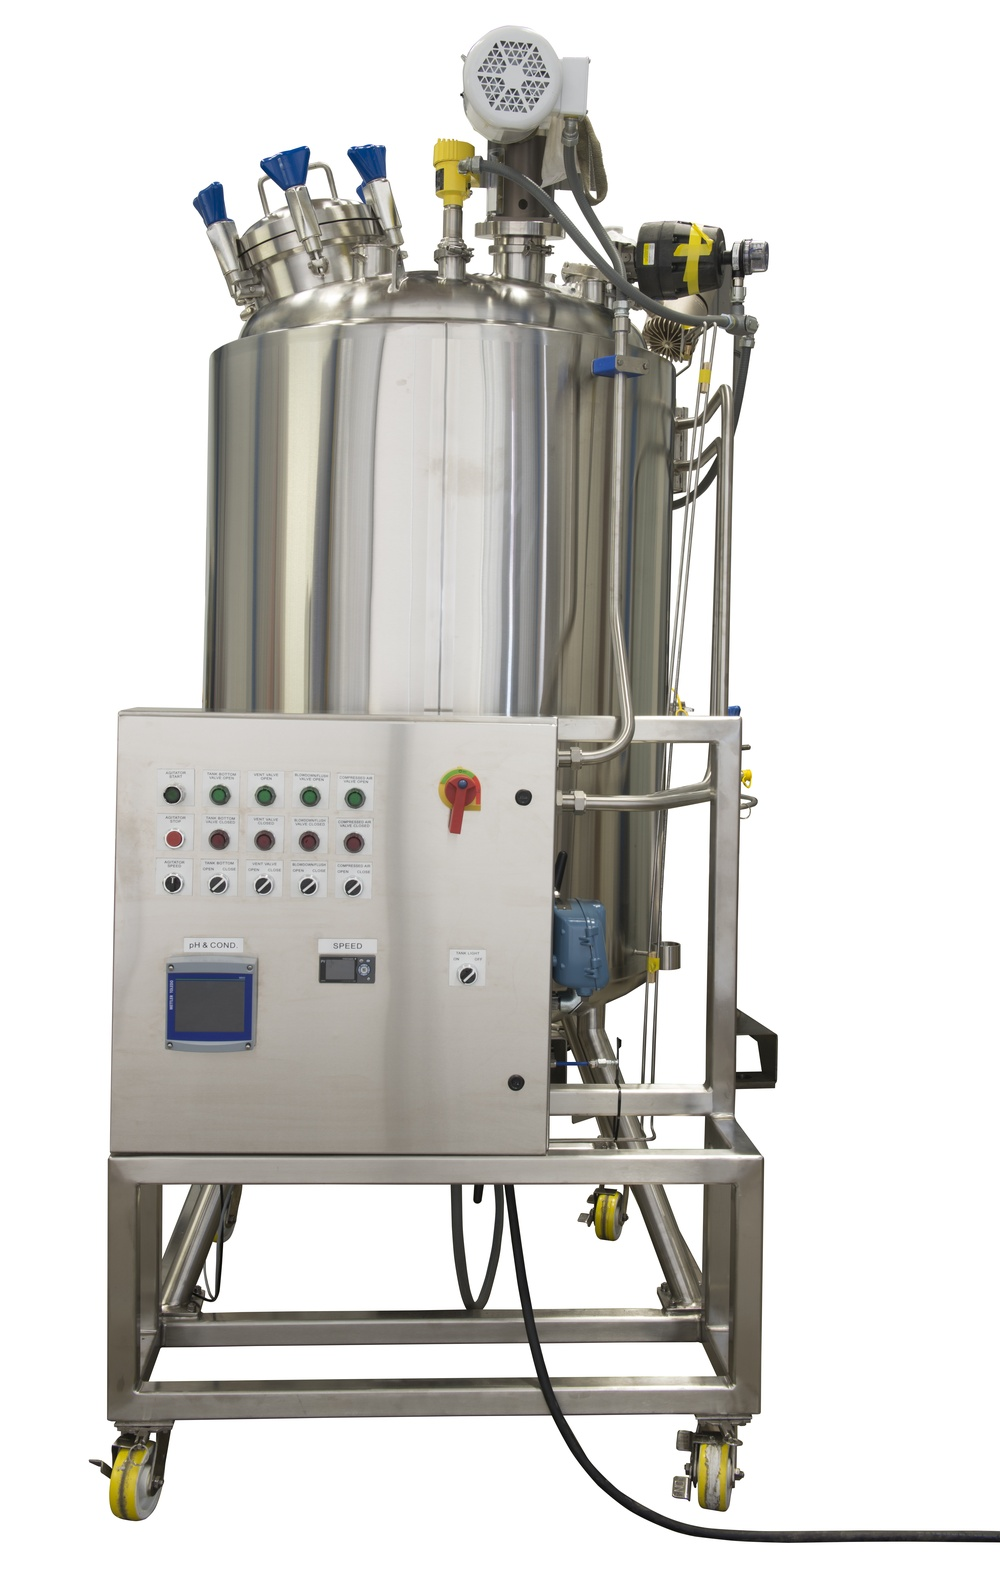 HOLLOWAY proudly produces pharmaceutical stainless steel solutions like this smart tank.